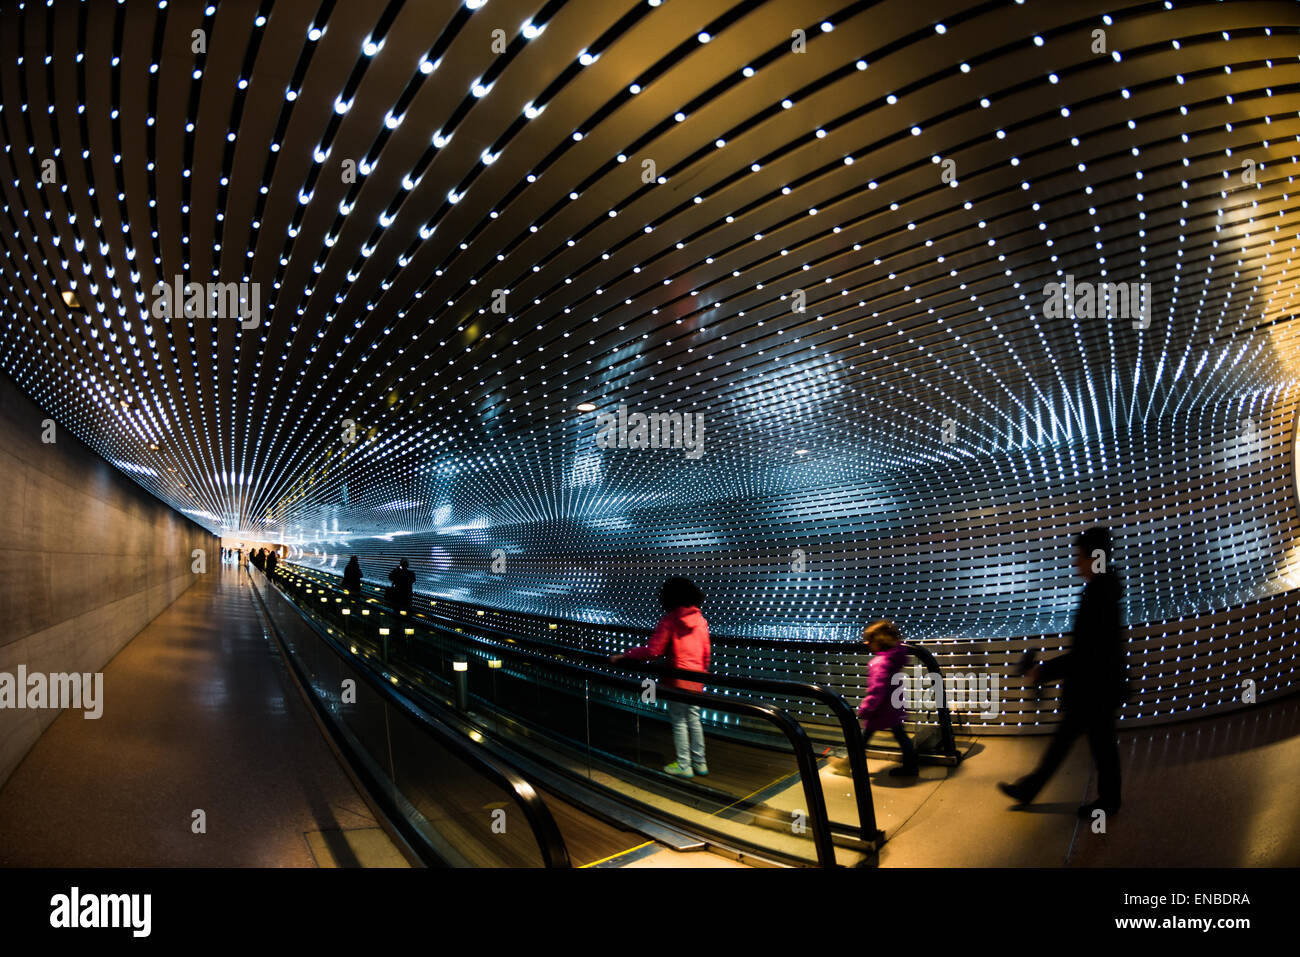 WASHINGTON DC, USA - Visitors move along a move walkway under an LED light installation by American artist Leo Villareal - Stock Image